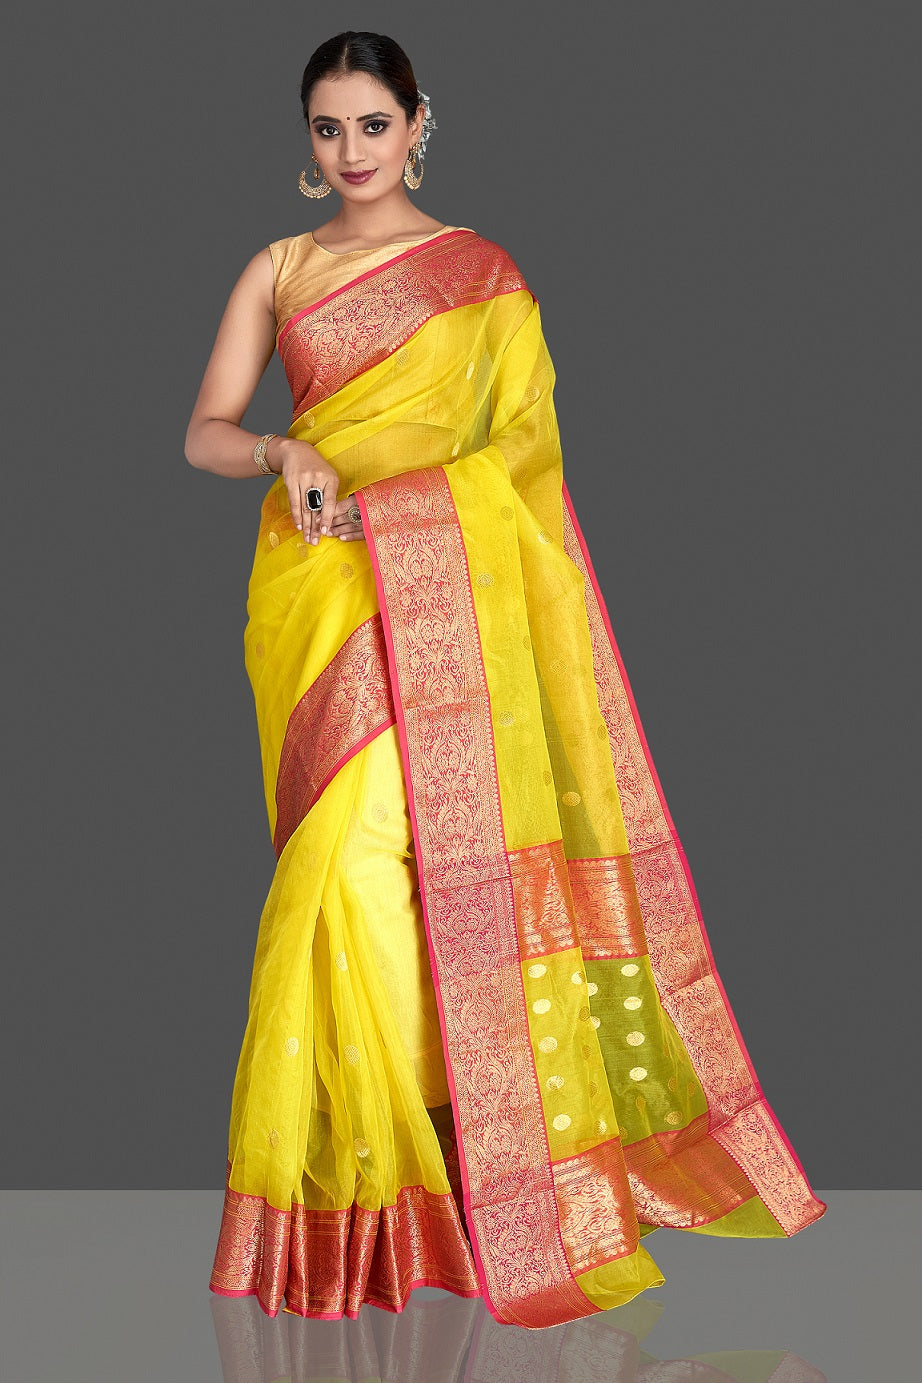 Buy gorgeous light yellow chanderi silk saree online in USA with pink zari border. Buy gorgeous Indian designer sarees, pure handwoven sarees, zari work sarees, Maheshwari sarees, chanderi saris in USA from Pure Elegance Indian fashion store.-full view